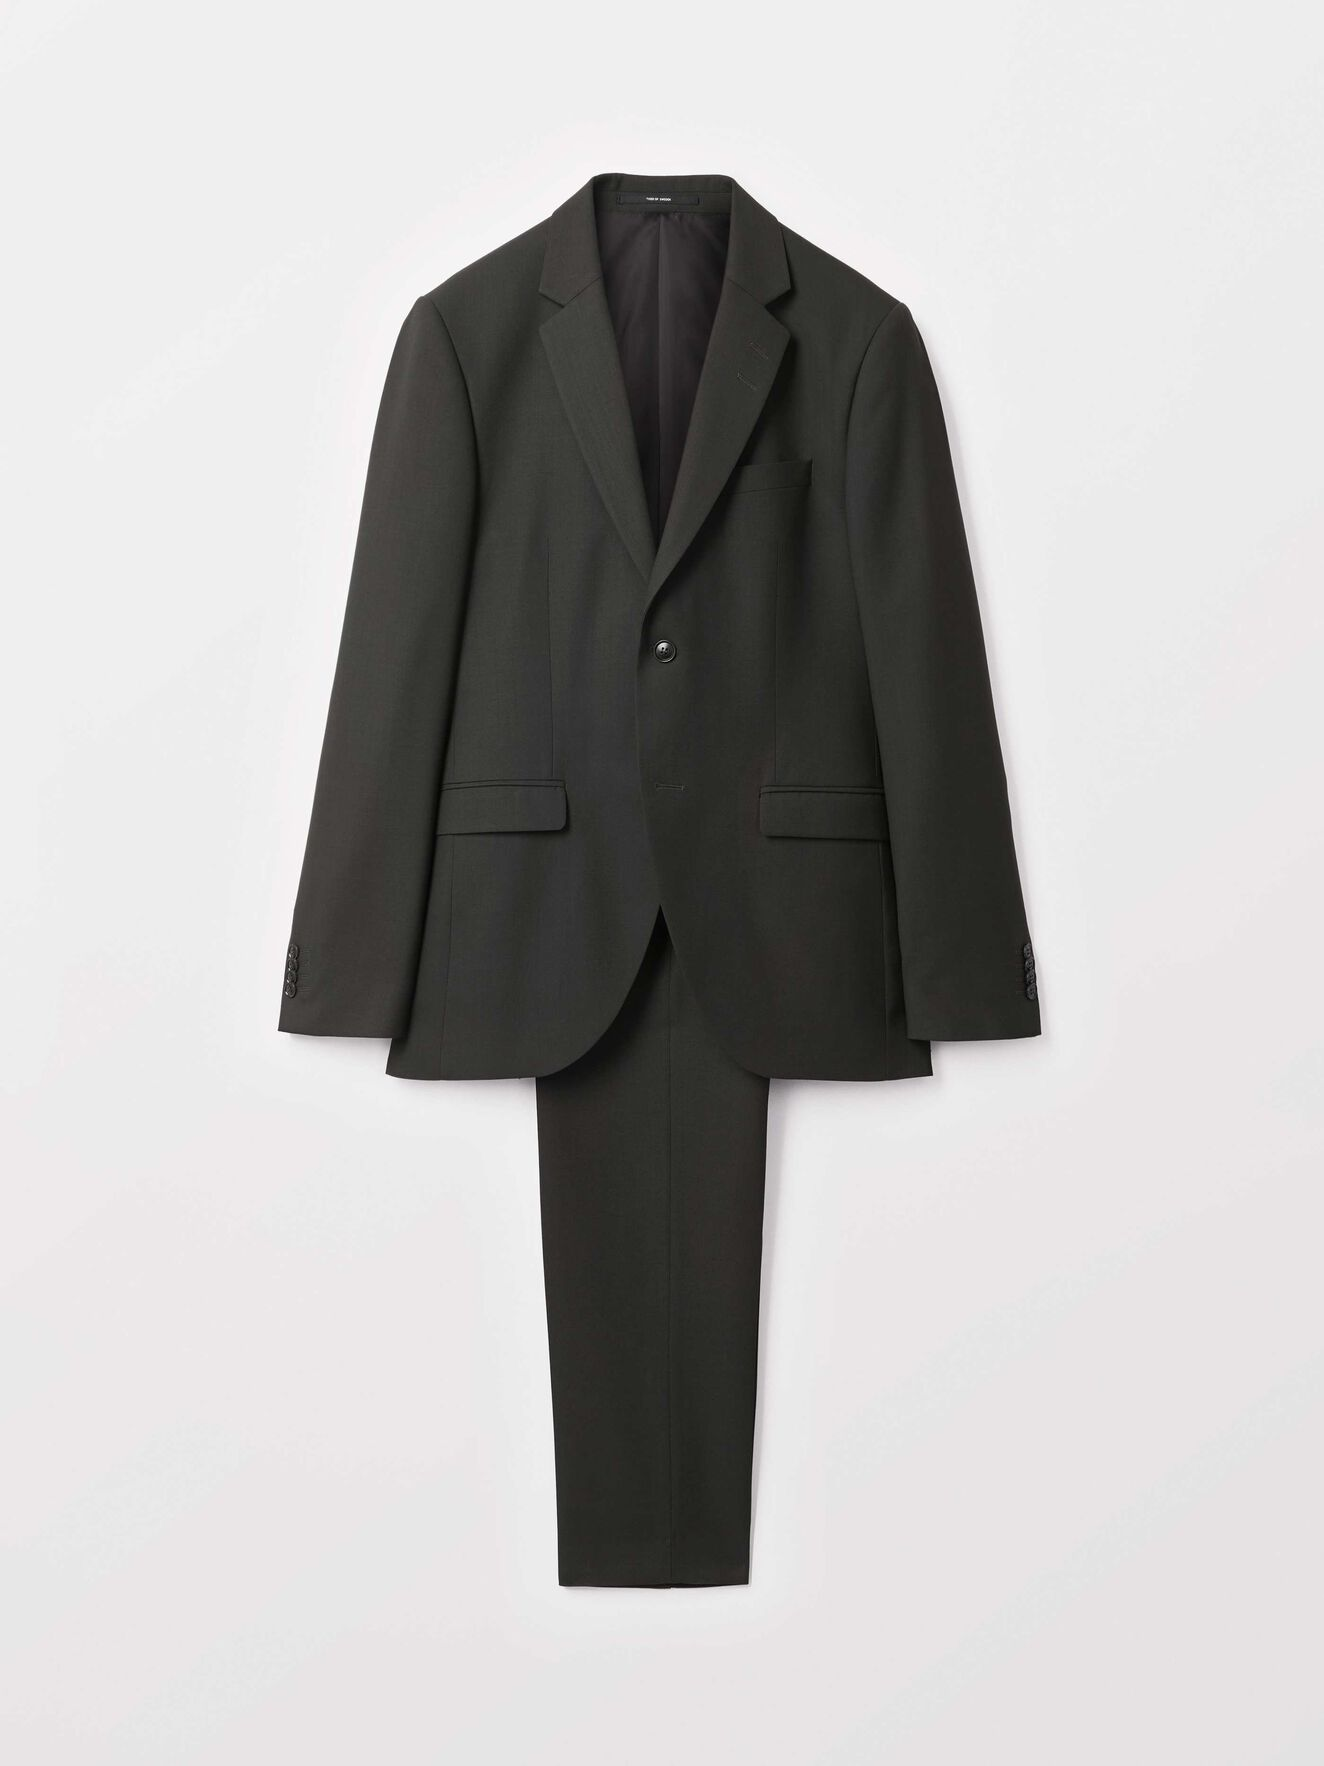 S.Jamonte Suit in Black Green from Tiger of Sweden